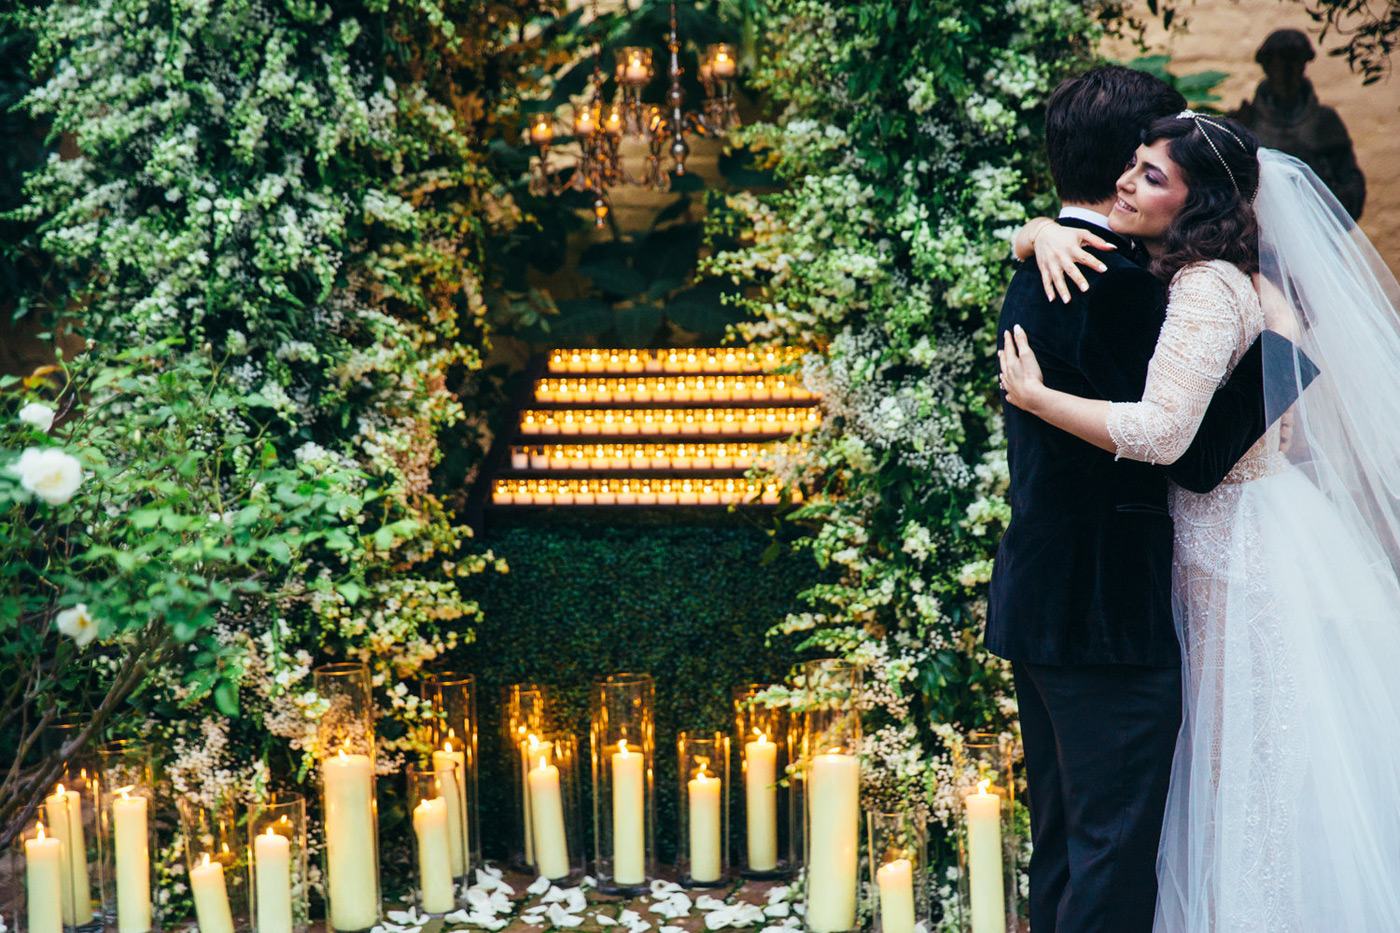 Bride and groom hugging in front of a candle lighting space in the middle of greenery with white rose petals